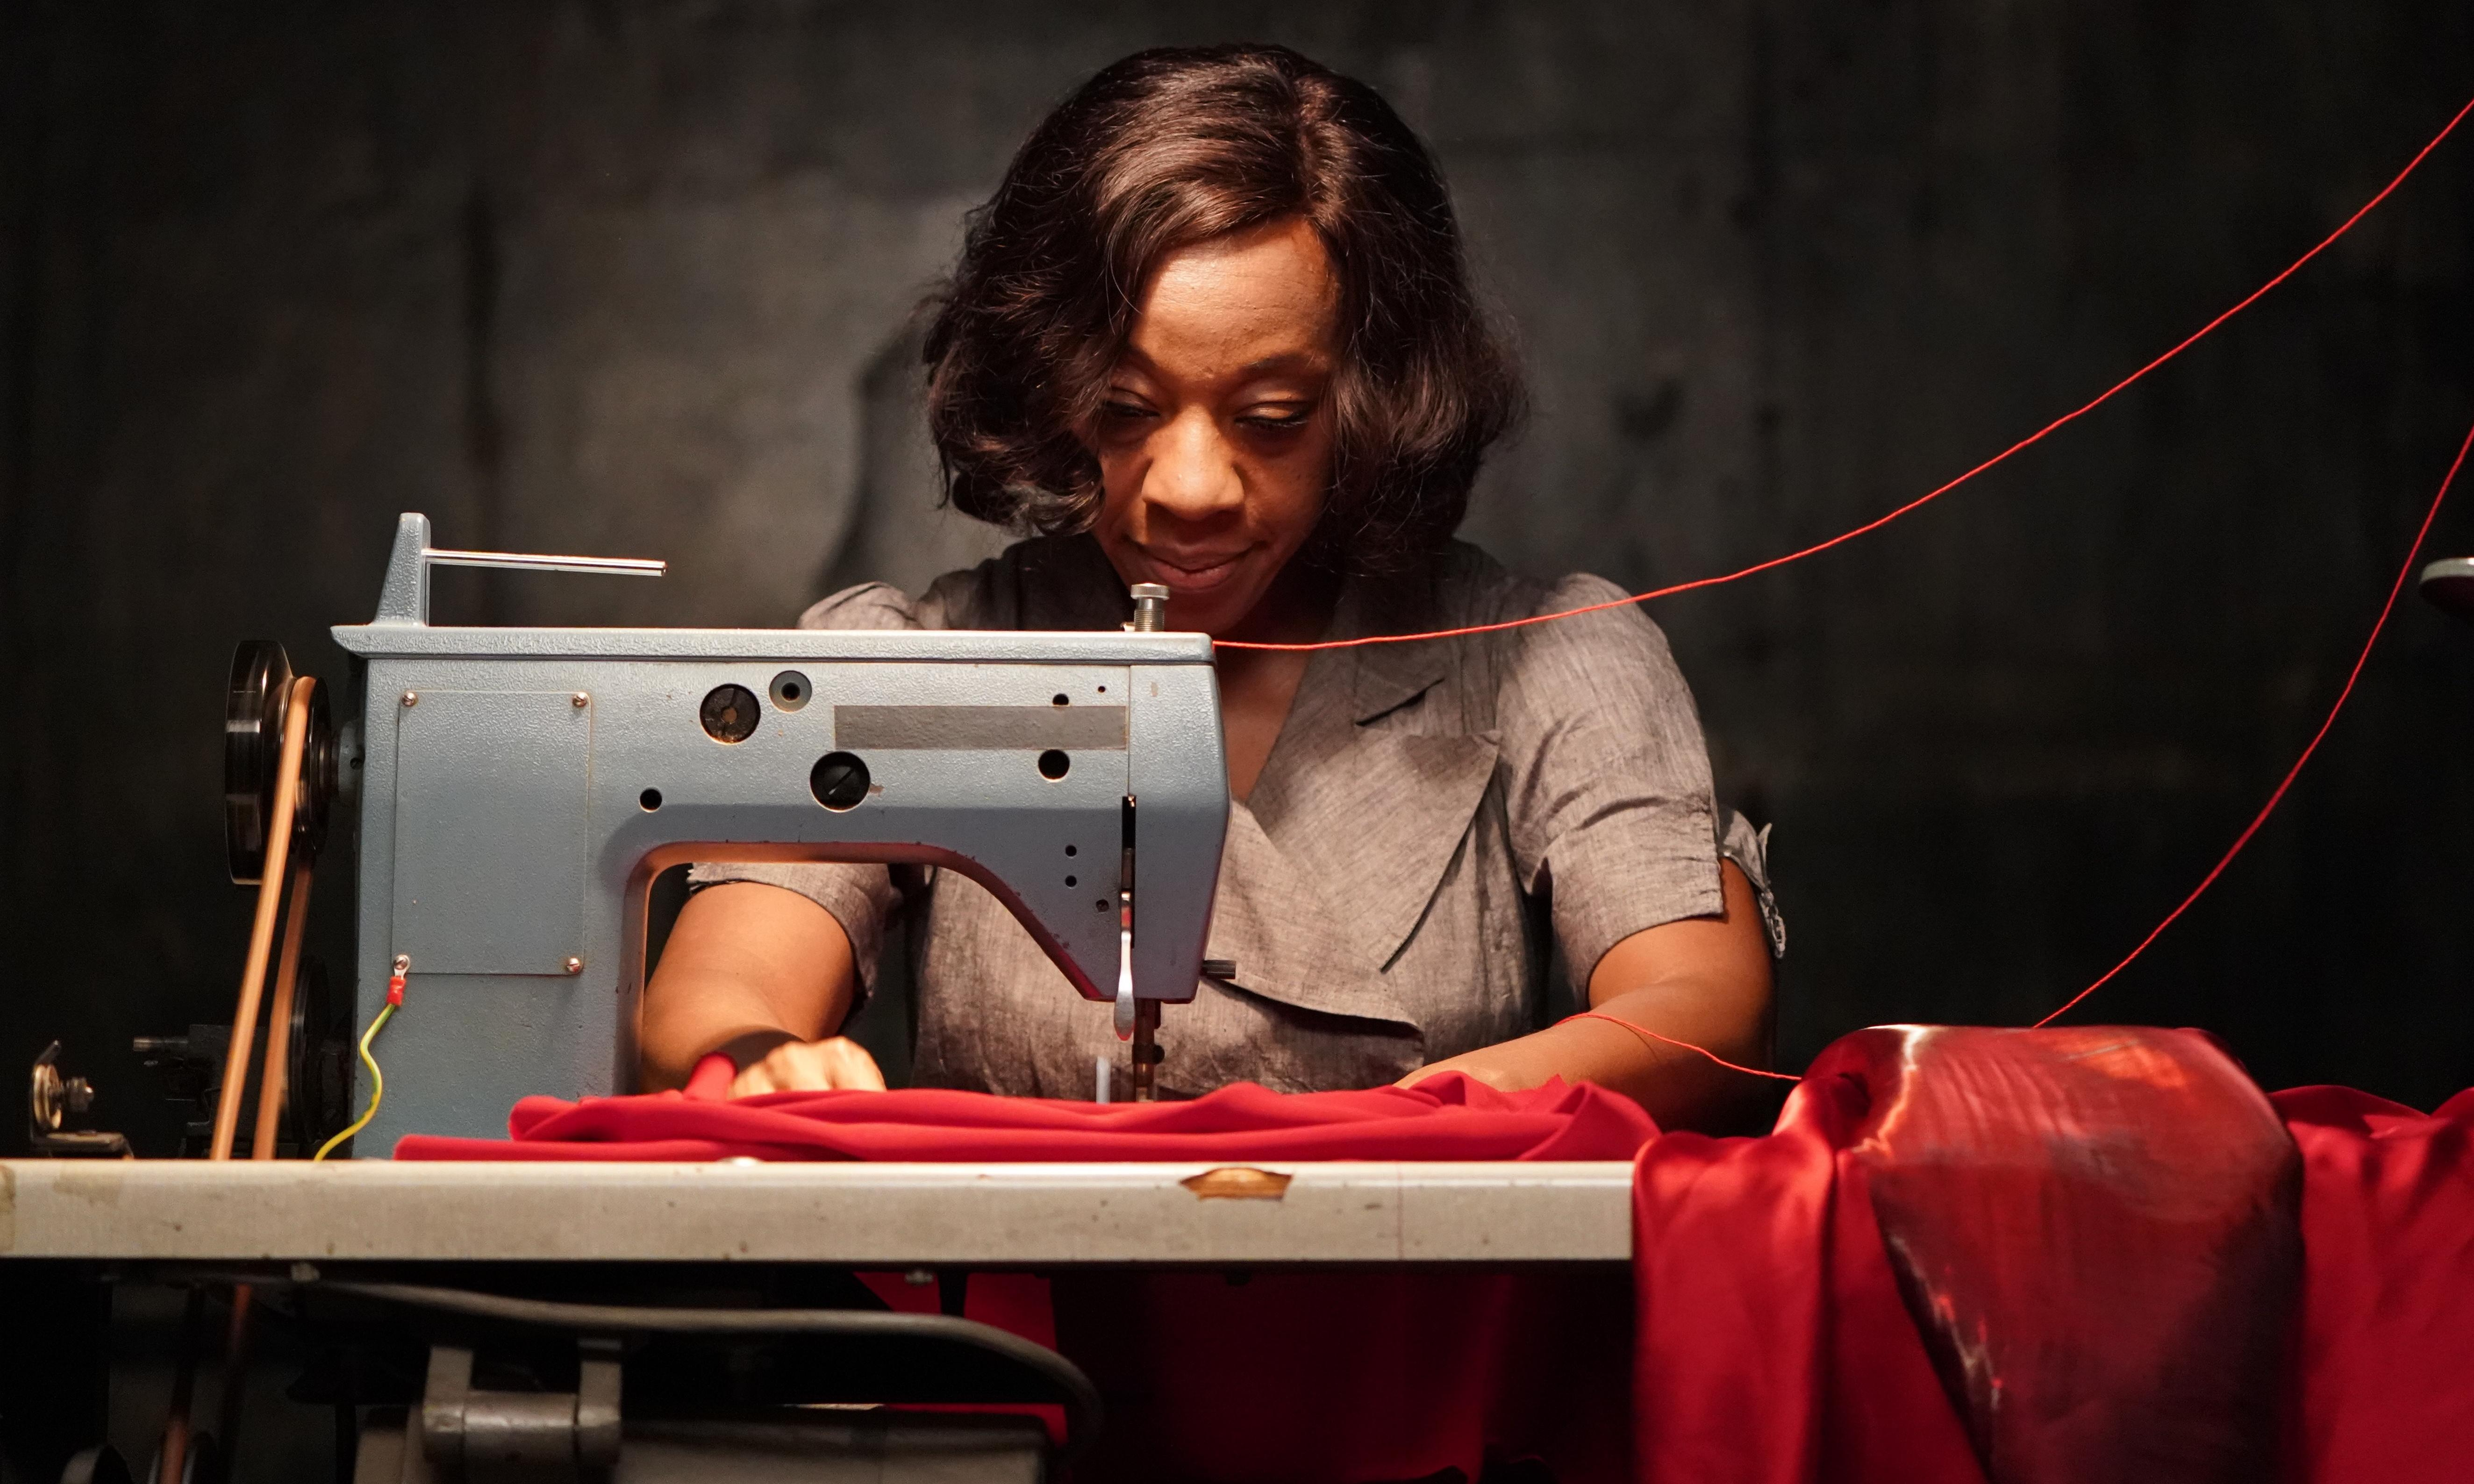 Dressed to kill: In Fabric and horror's fixation with evil fashion